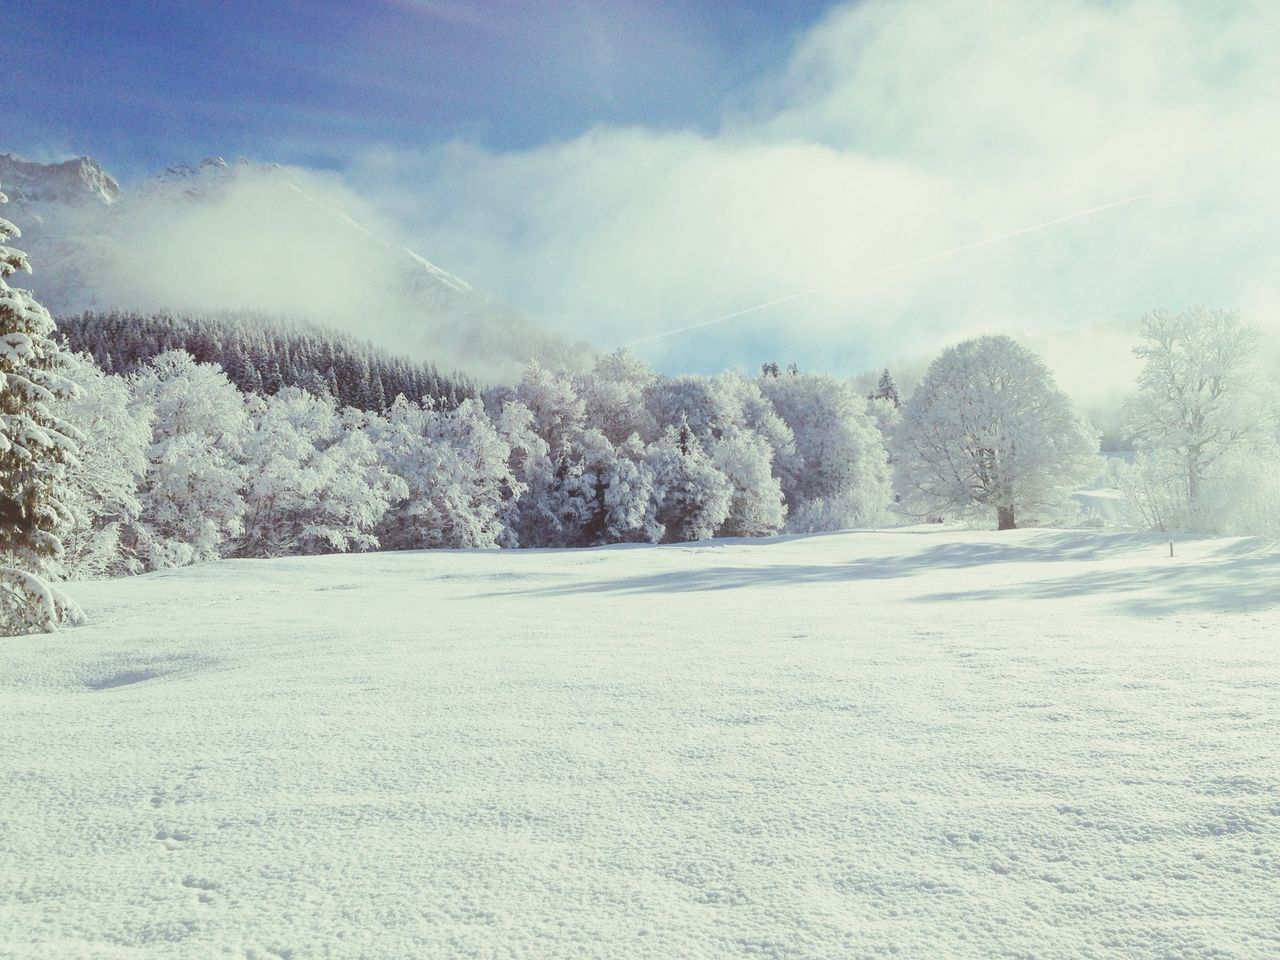 Tranquil view of snowy landscape